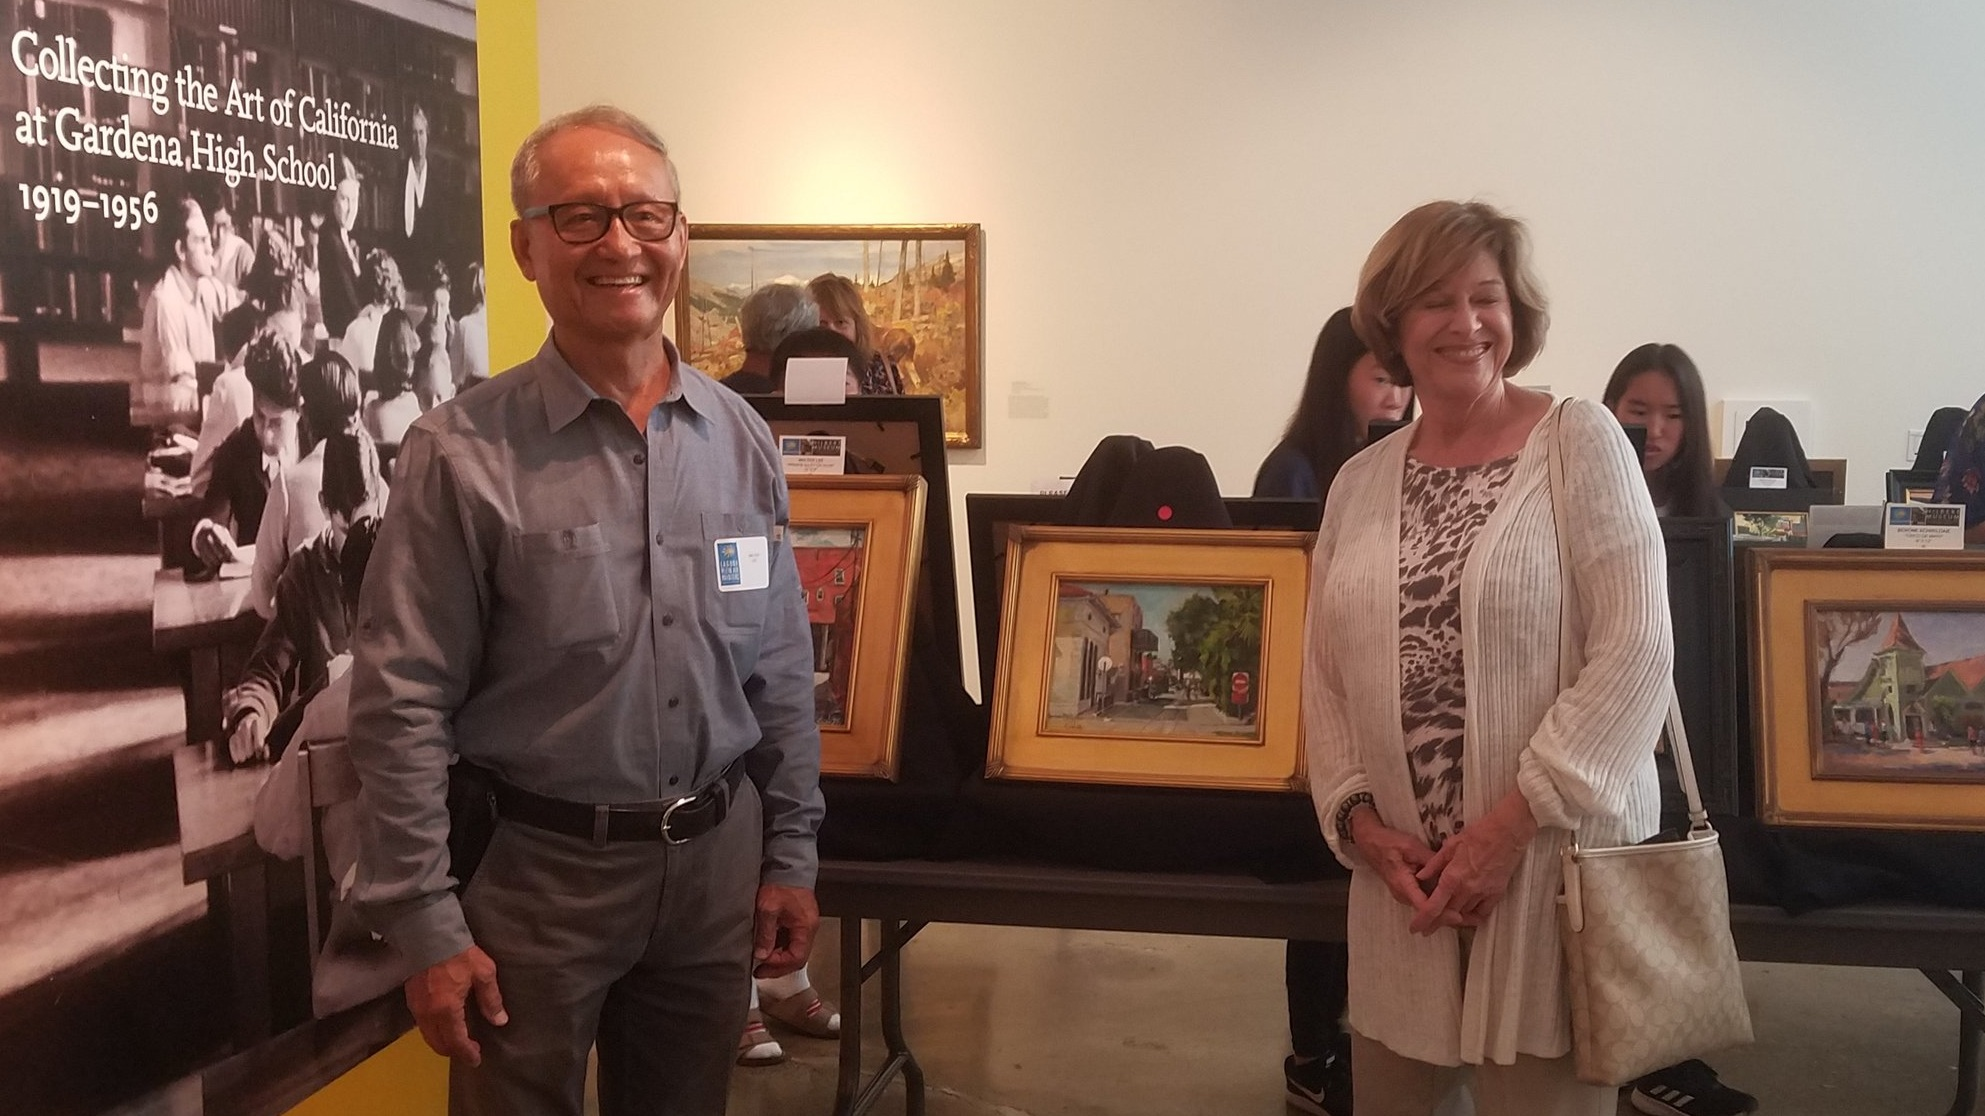 Walter with his artwork collector at Hilbert Museum of California Art at Chapman University on June 8, 2019. She purchased Walter's oil painting titled Alley Behind Sunkist Building.